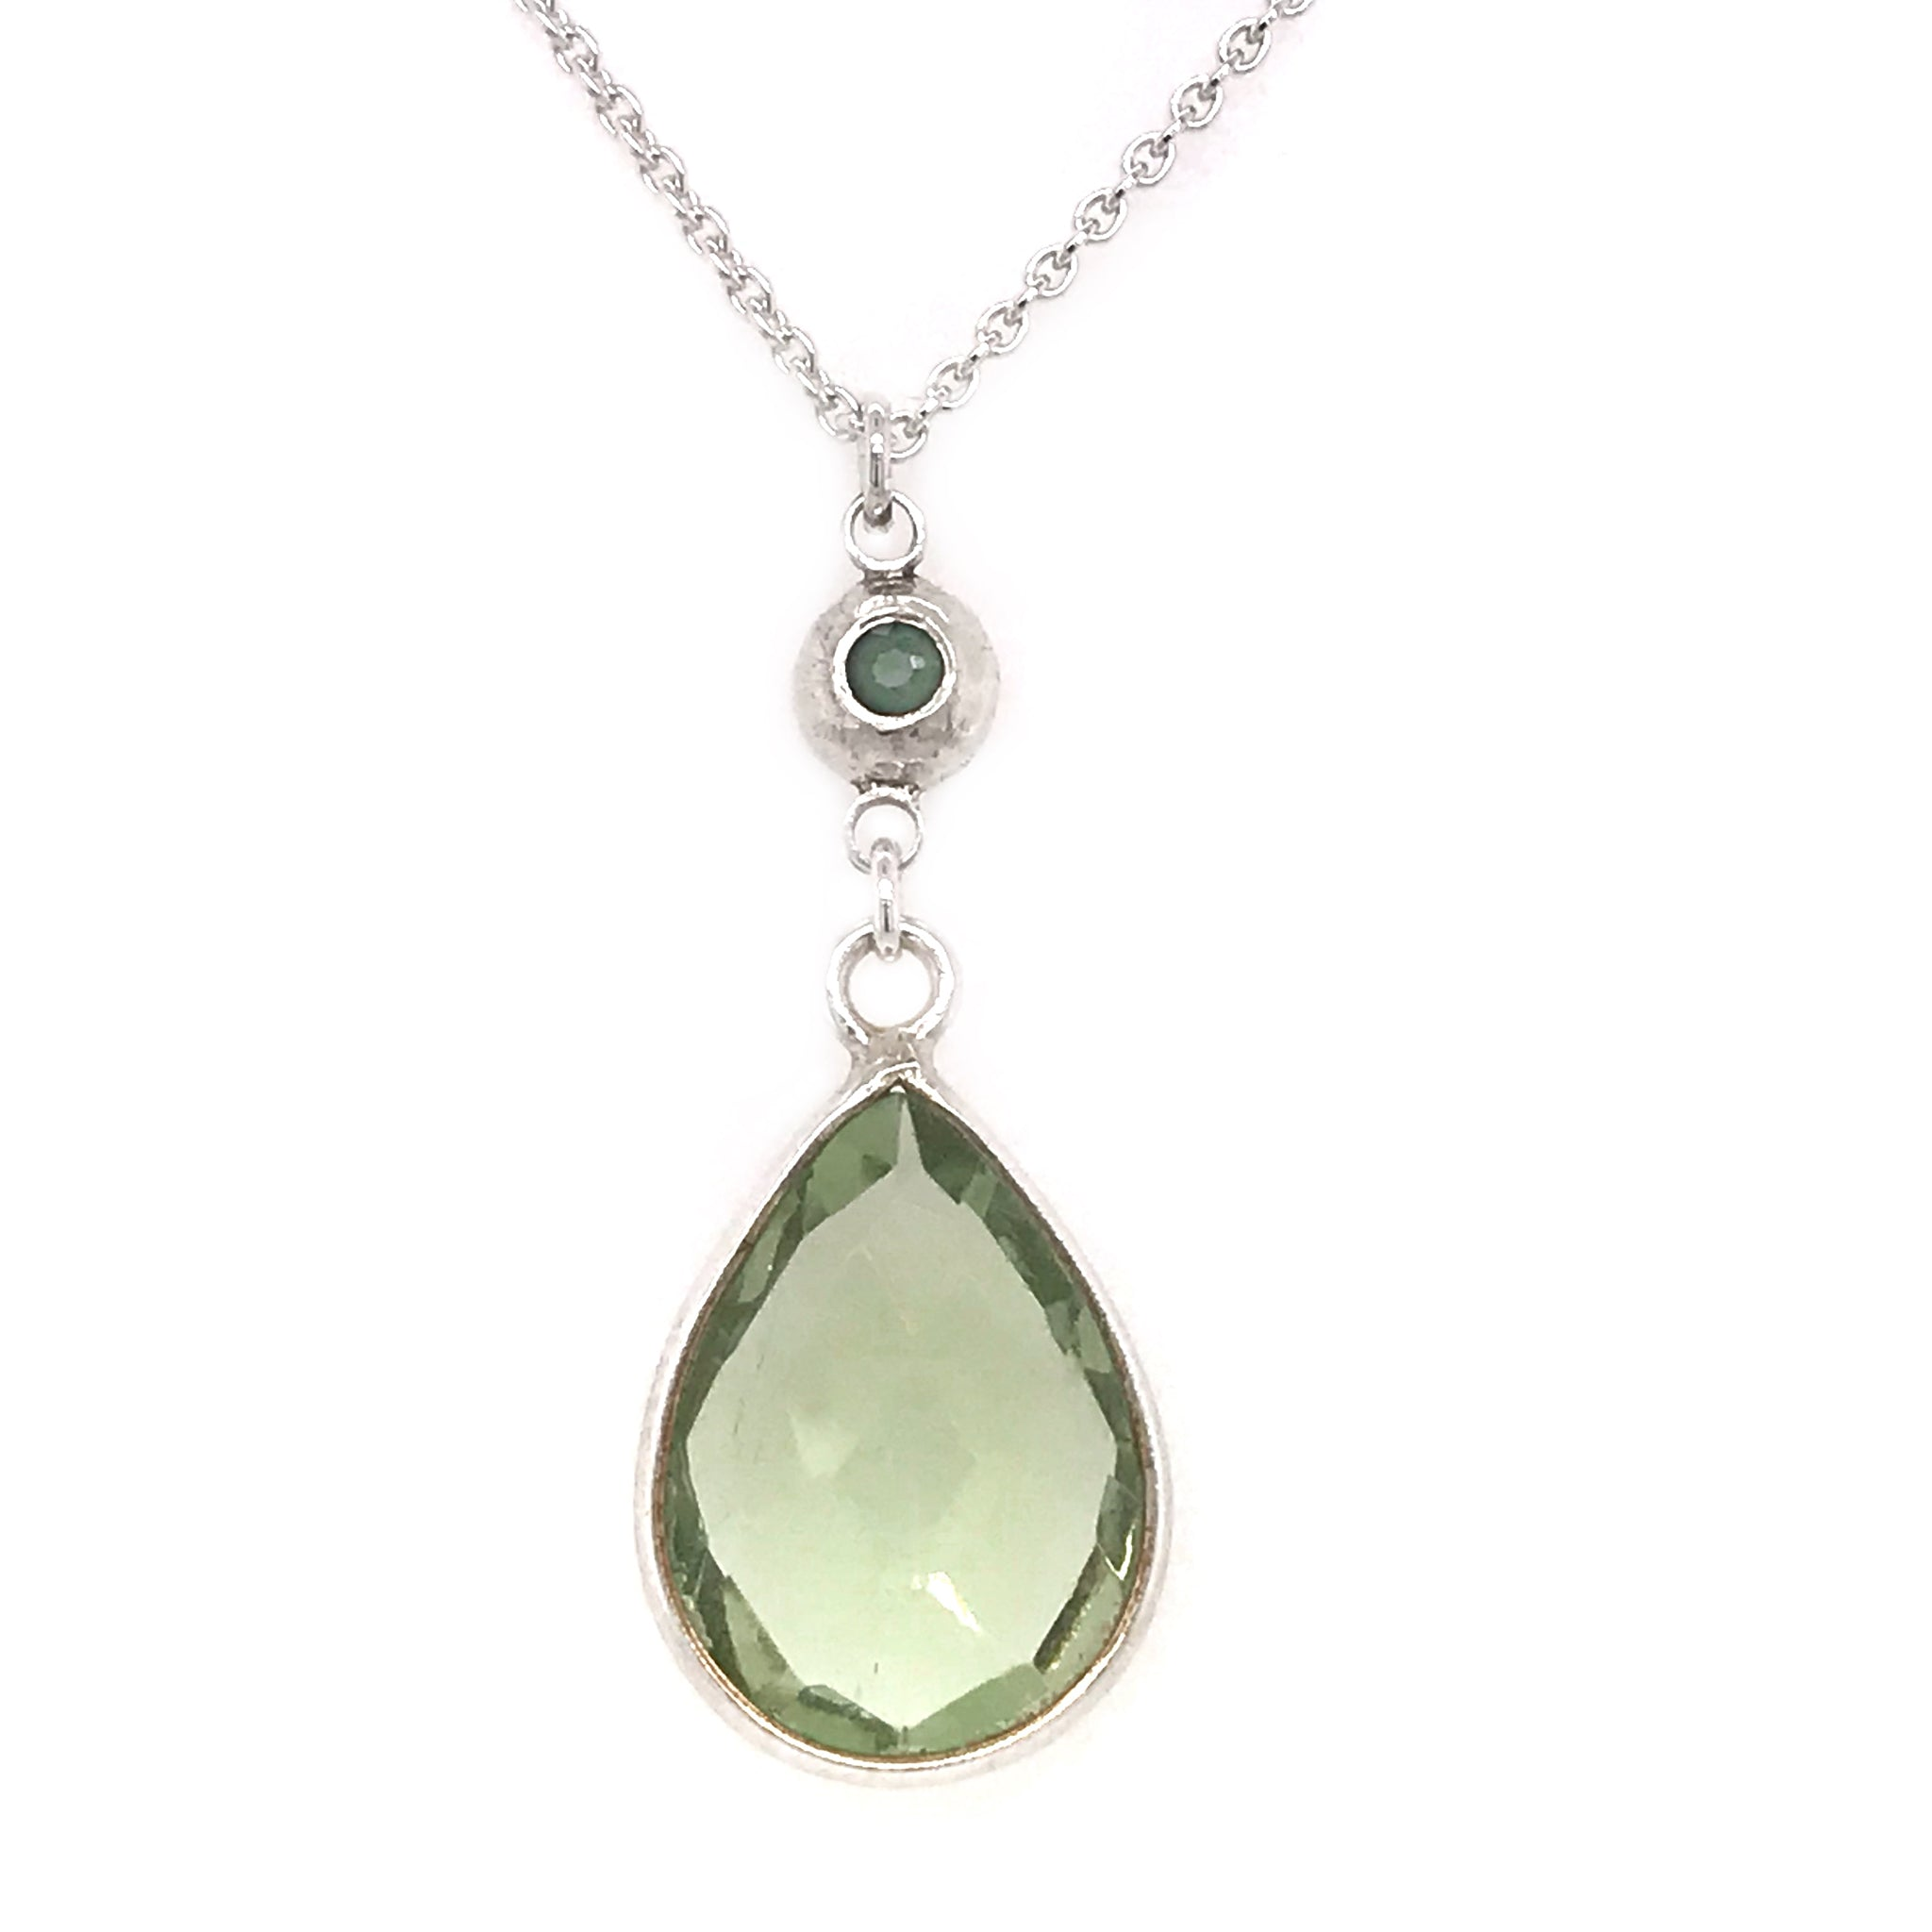 green-quartz-necklace-with-silver-pebble-charm-set-with-peridot-stone-kriket-broadhurst-jewellery-Sydney